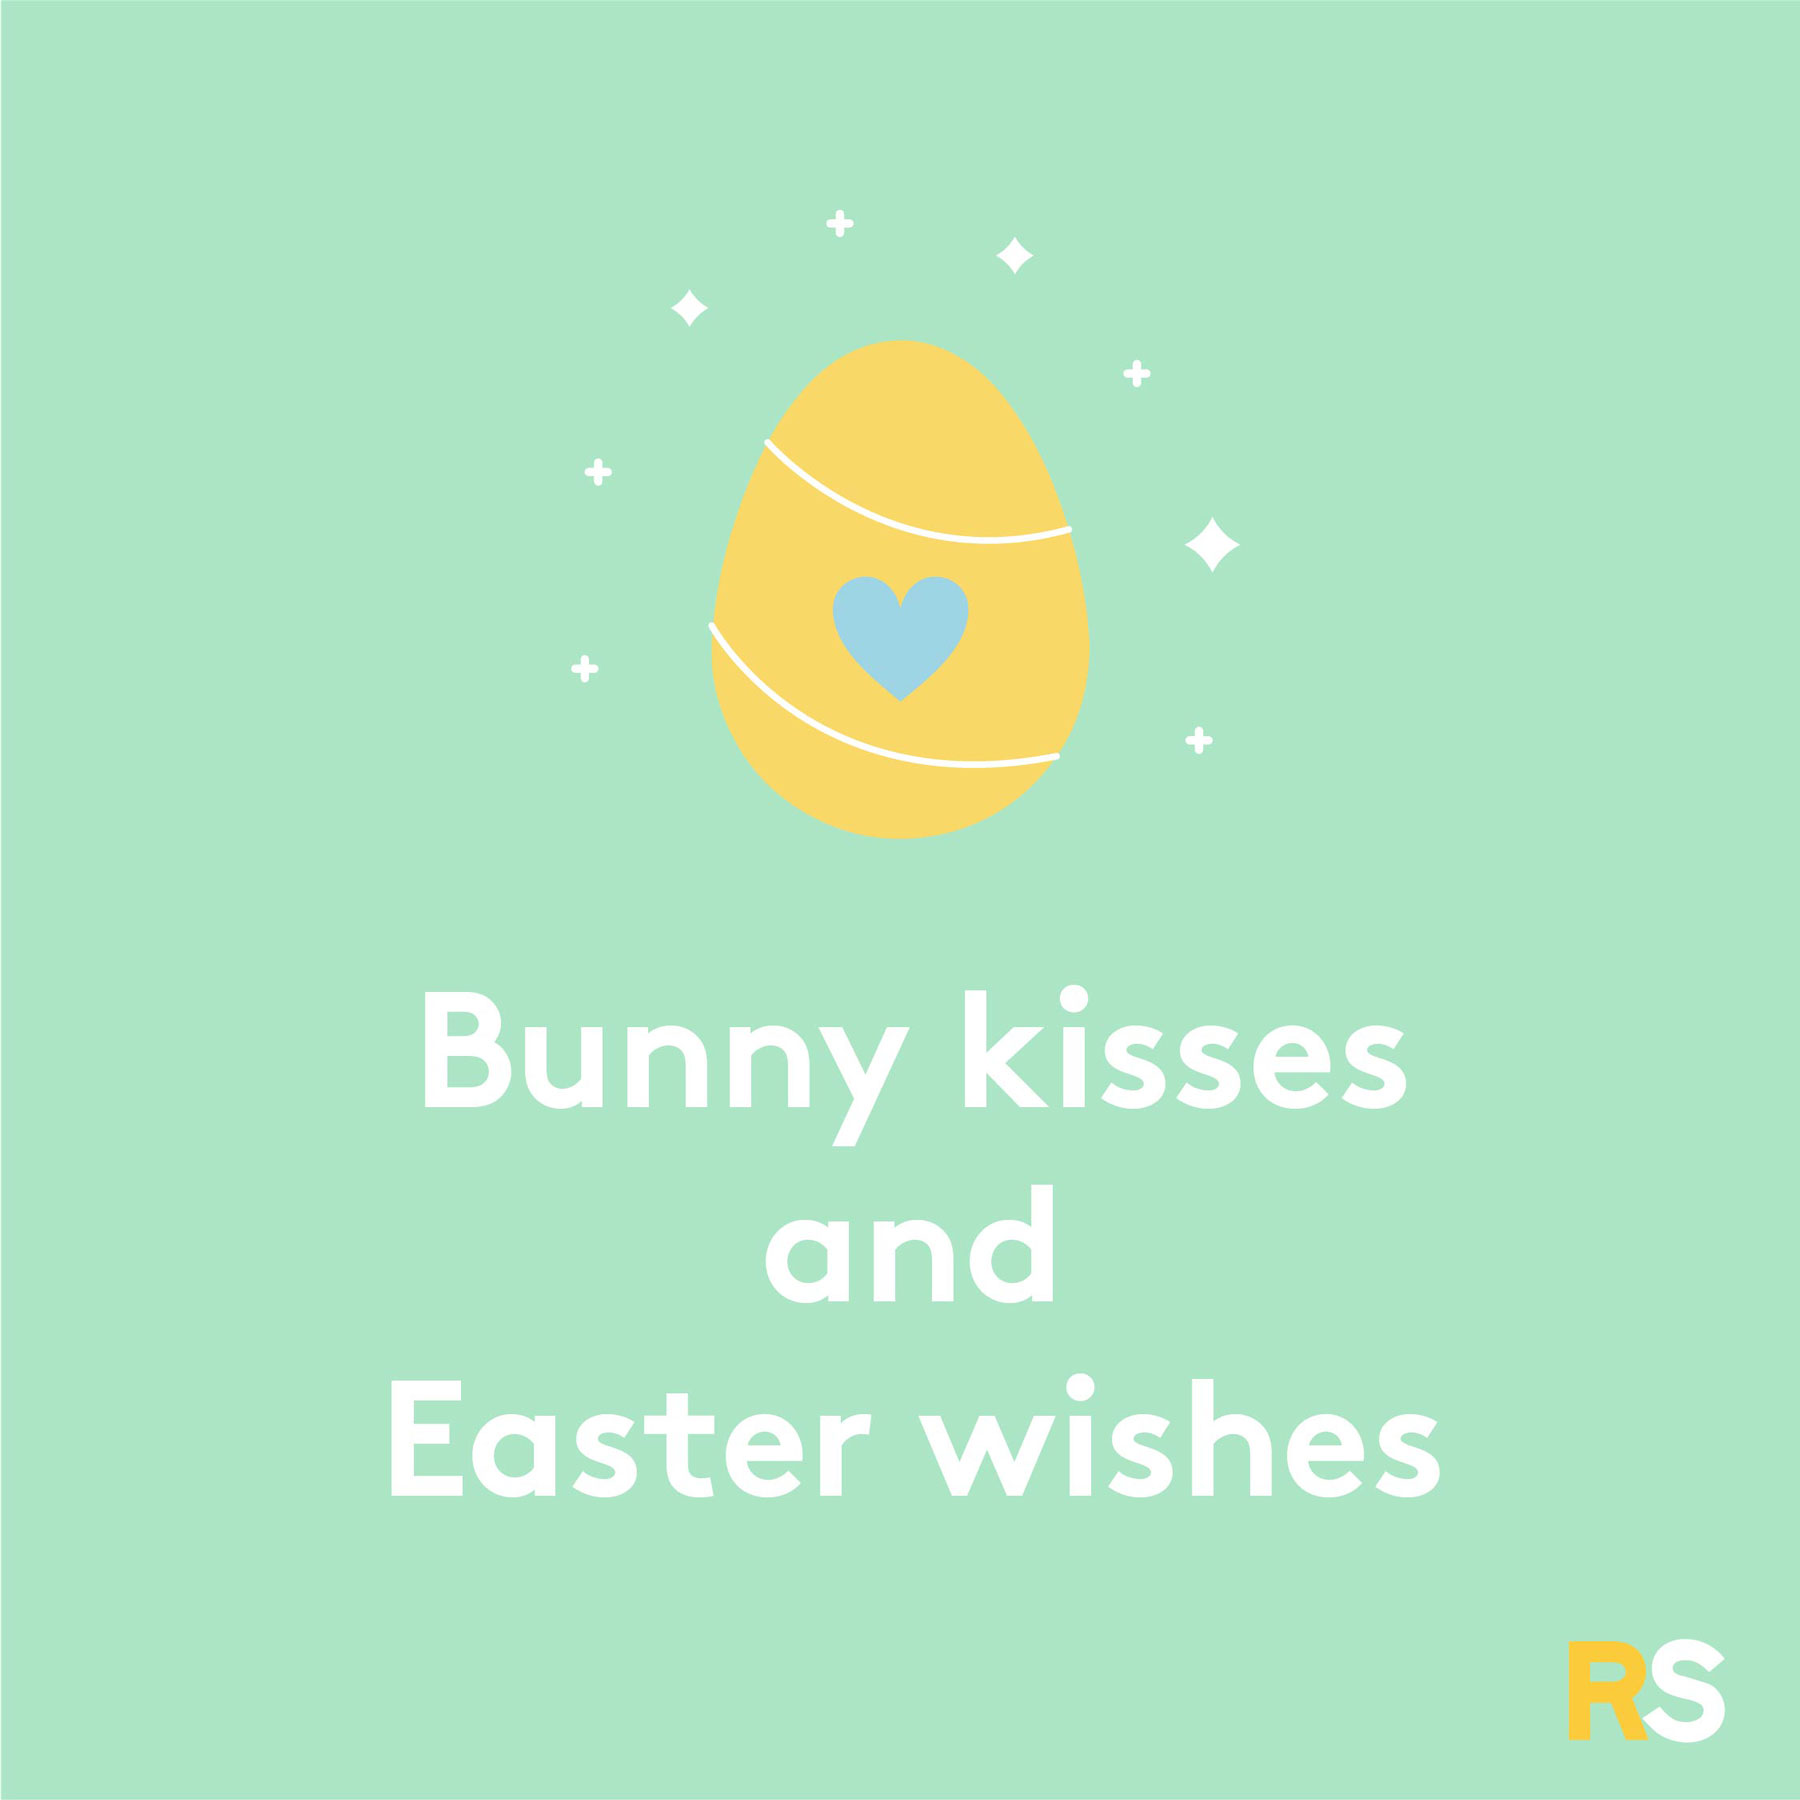 Easter quotes, captions, and messages - Bunny kisses and Easter wishes